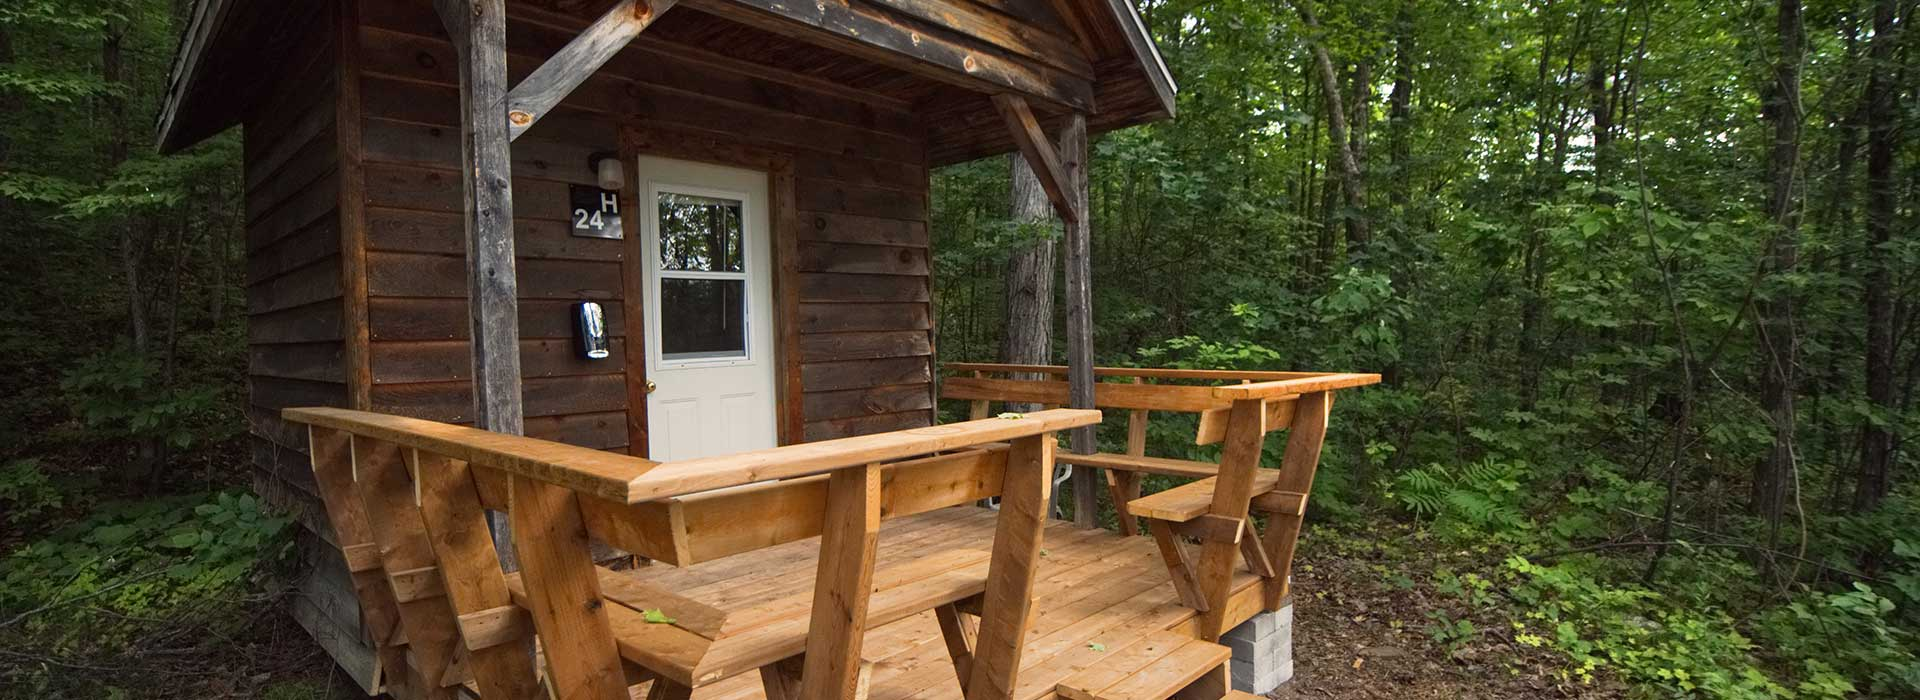 Hillside Cabins Exterior at the National Whitewater Park